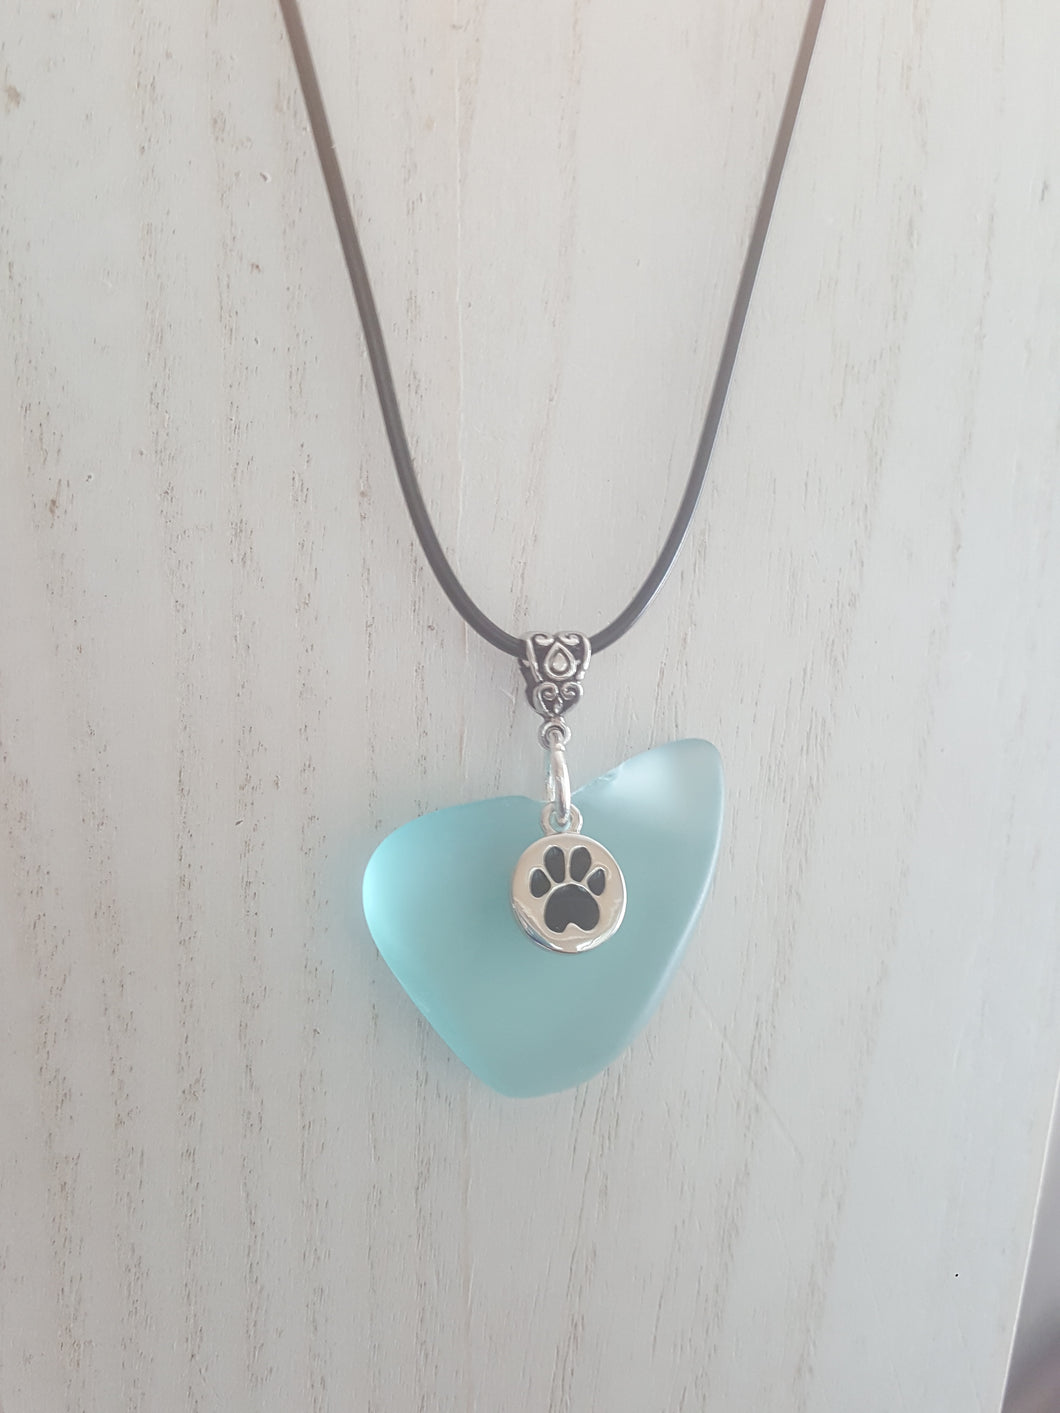 Fur Friend Necklace~ Seafoam Green Heart Shaped Seaglass Pendant With Paw Print Charm